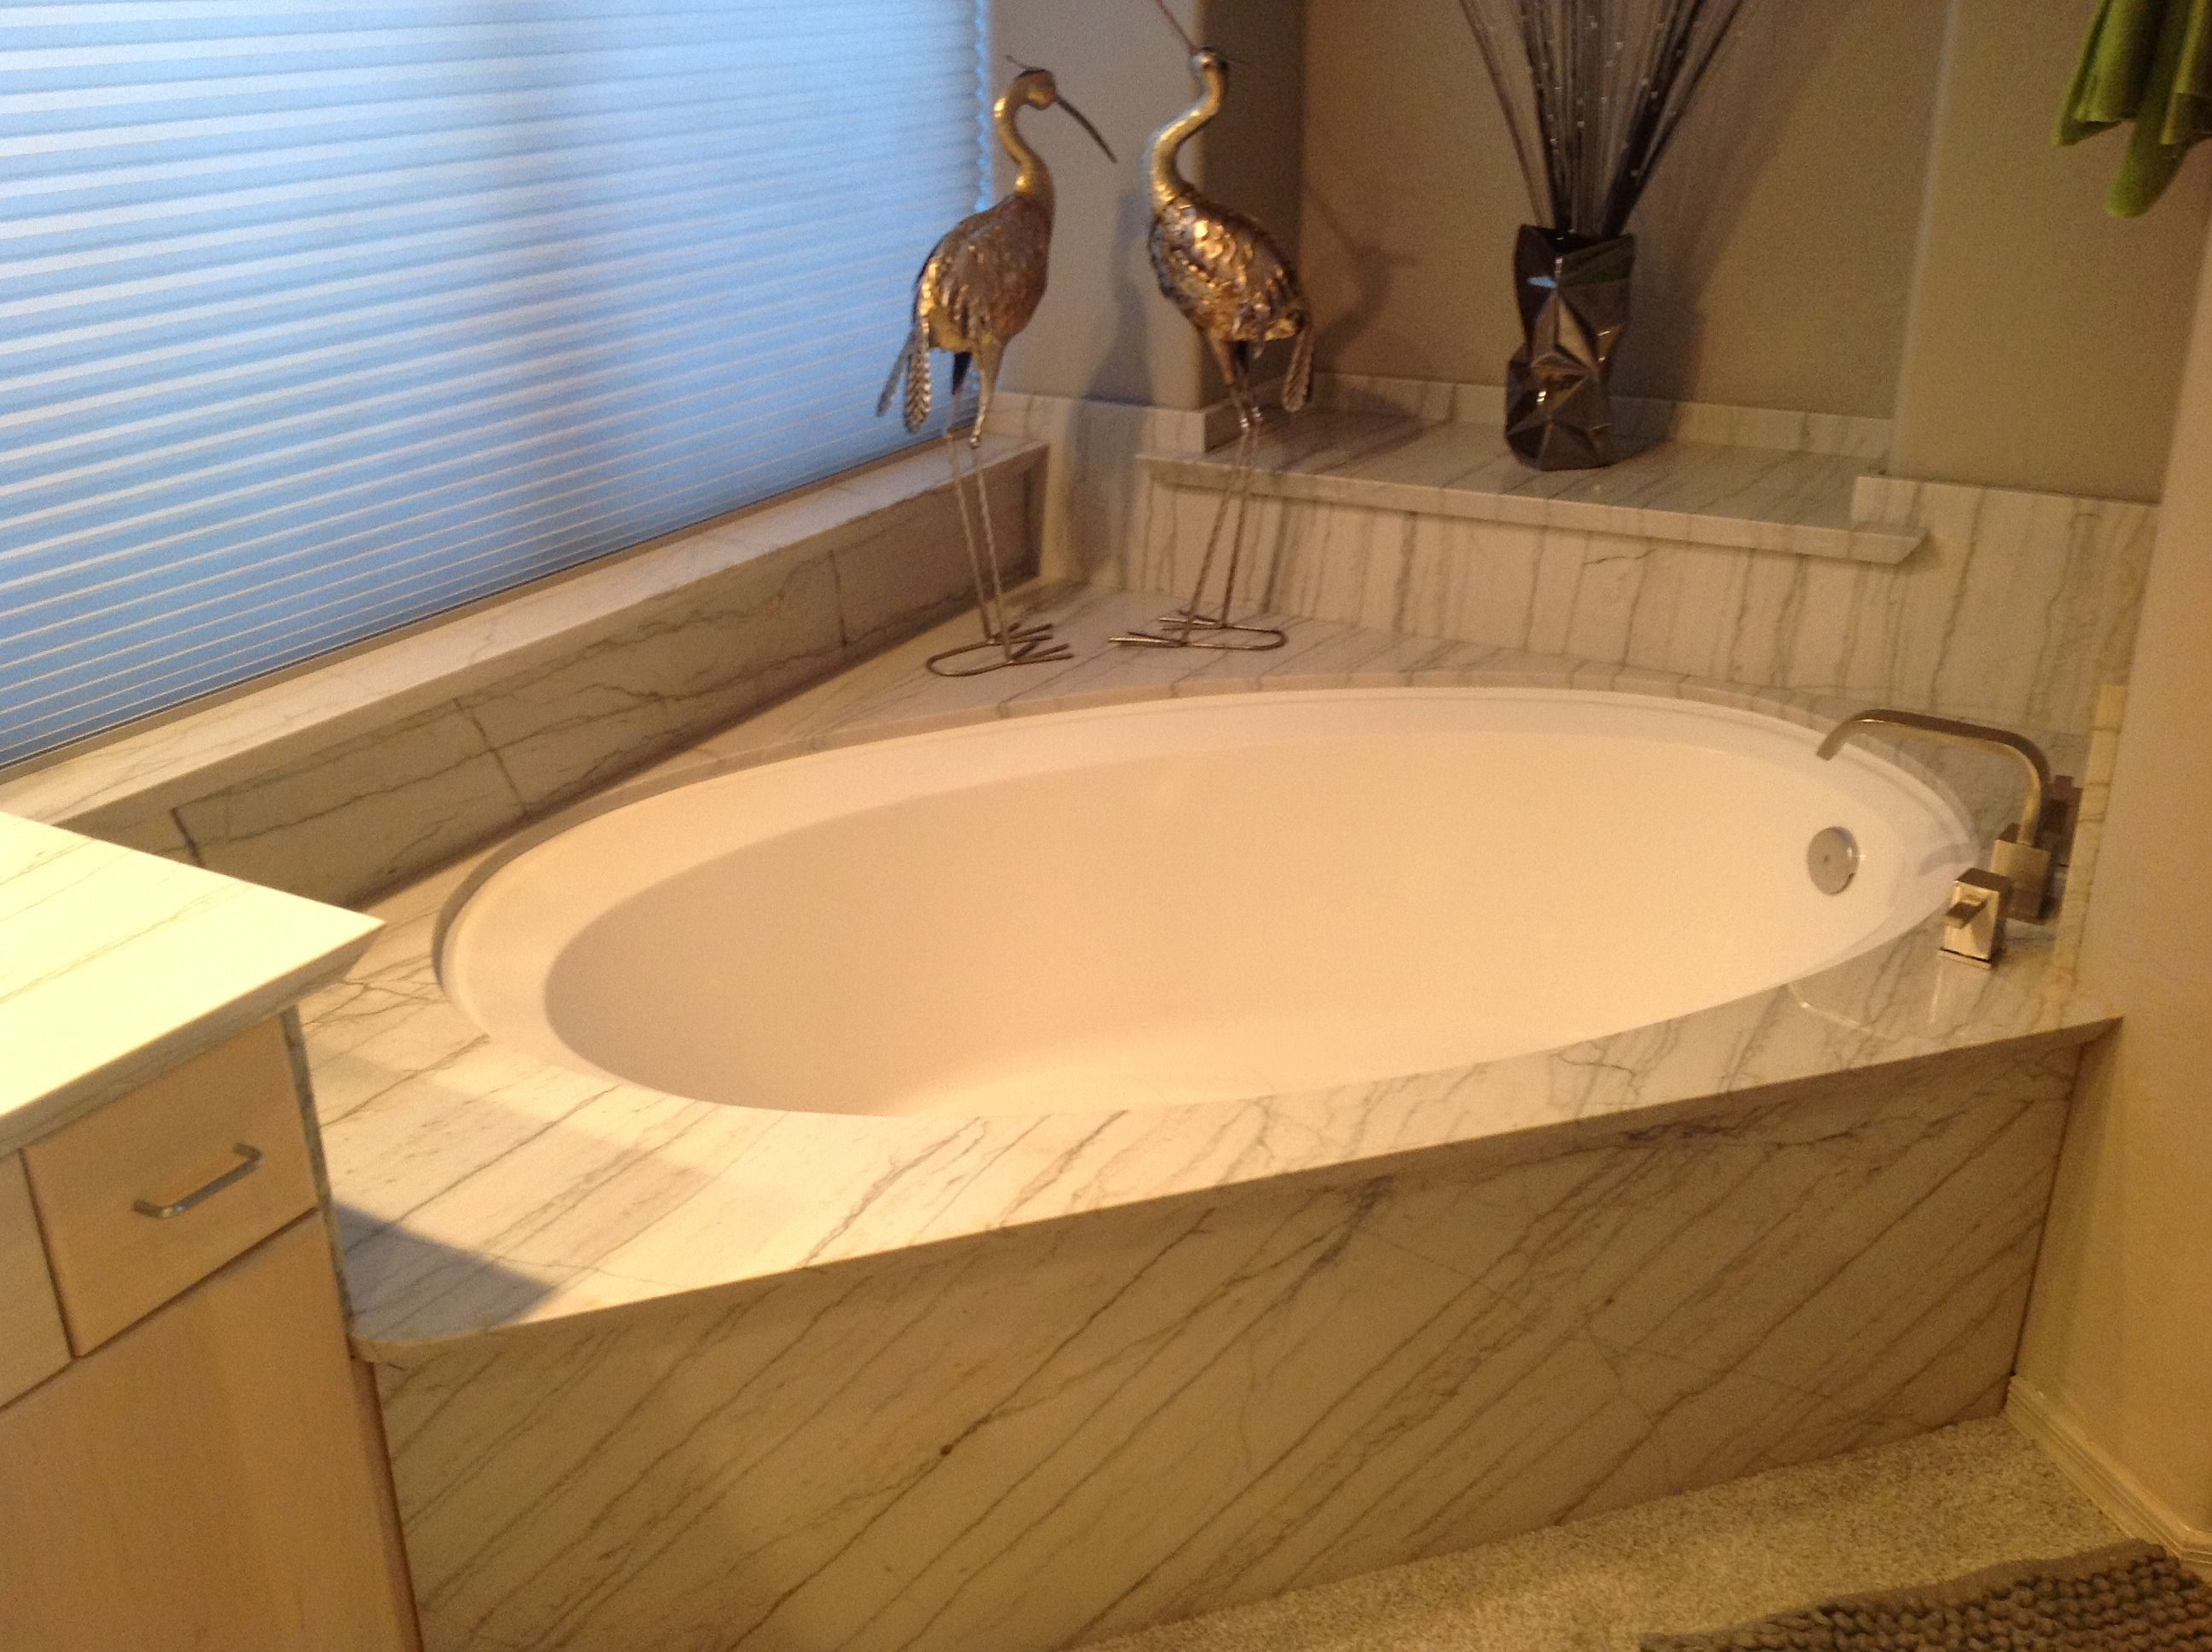 Quartz Slab Stone Used Over An Existing Cultured Marble Tub Wrapping Window Sills Niches And Backsplashes All Combine Marble Tub Quartz Slab Cultured Marble